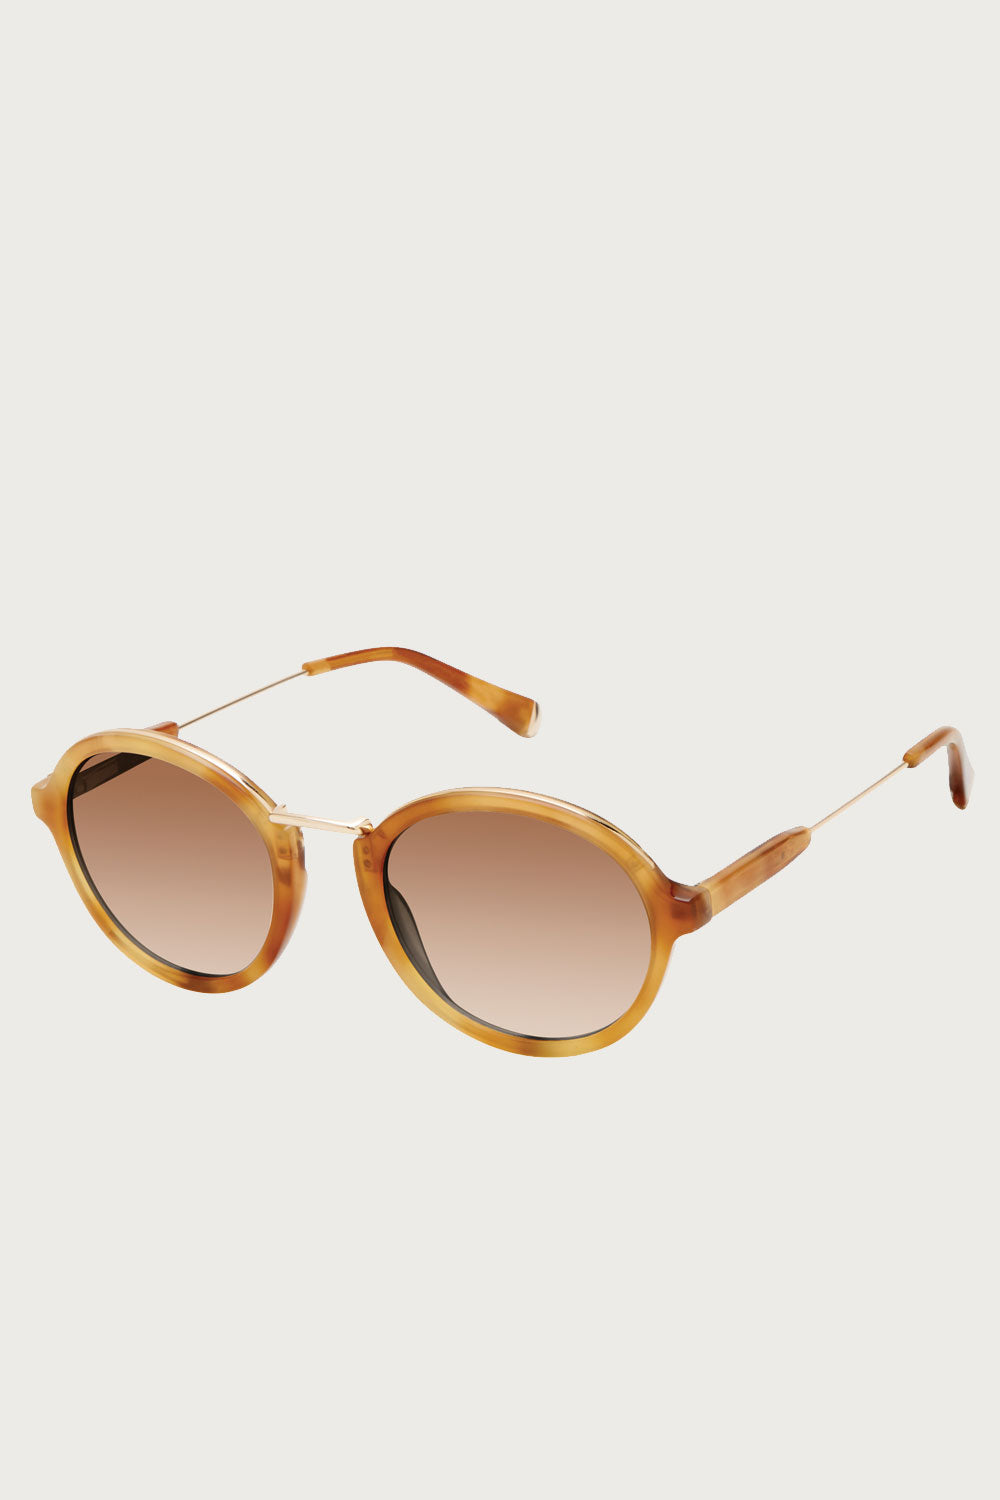 Fiona Sunglasses in Demi Amber